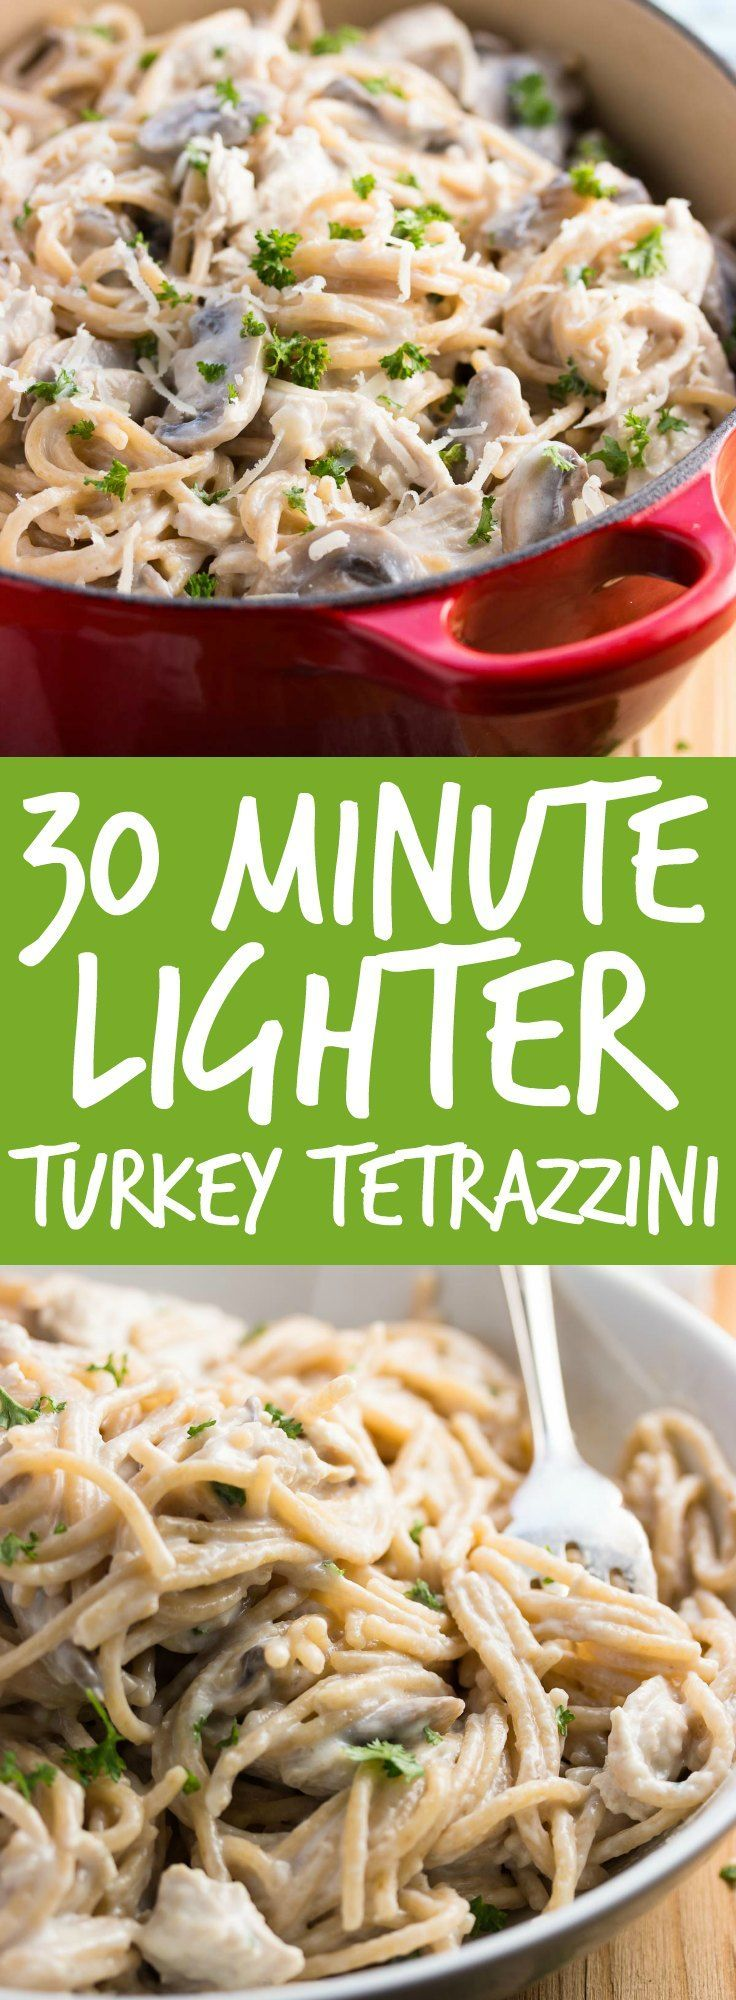 Relax your dinner time with this 30 Minute Healthy Stovetop Turkey Tetrazzini recipe. It's quick and easy to make and is sure to become a new family favorite - plus it makes great use of Thanksgiving or Christmas leftovers! | savorynothings.com